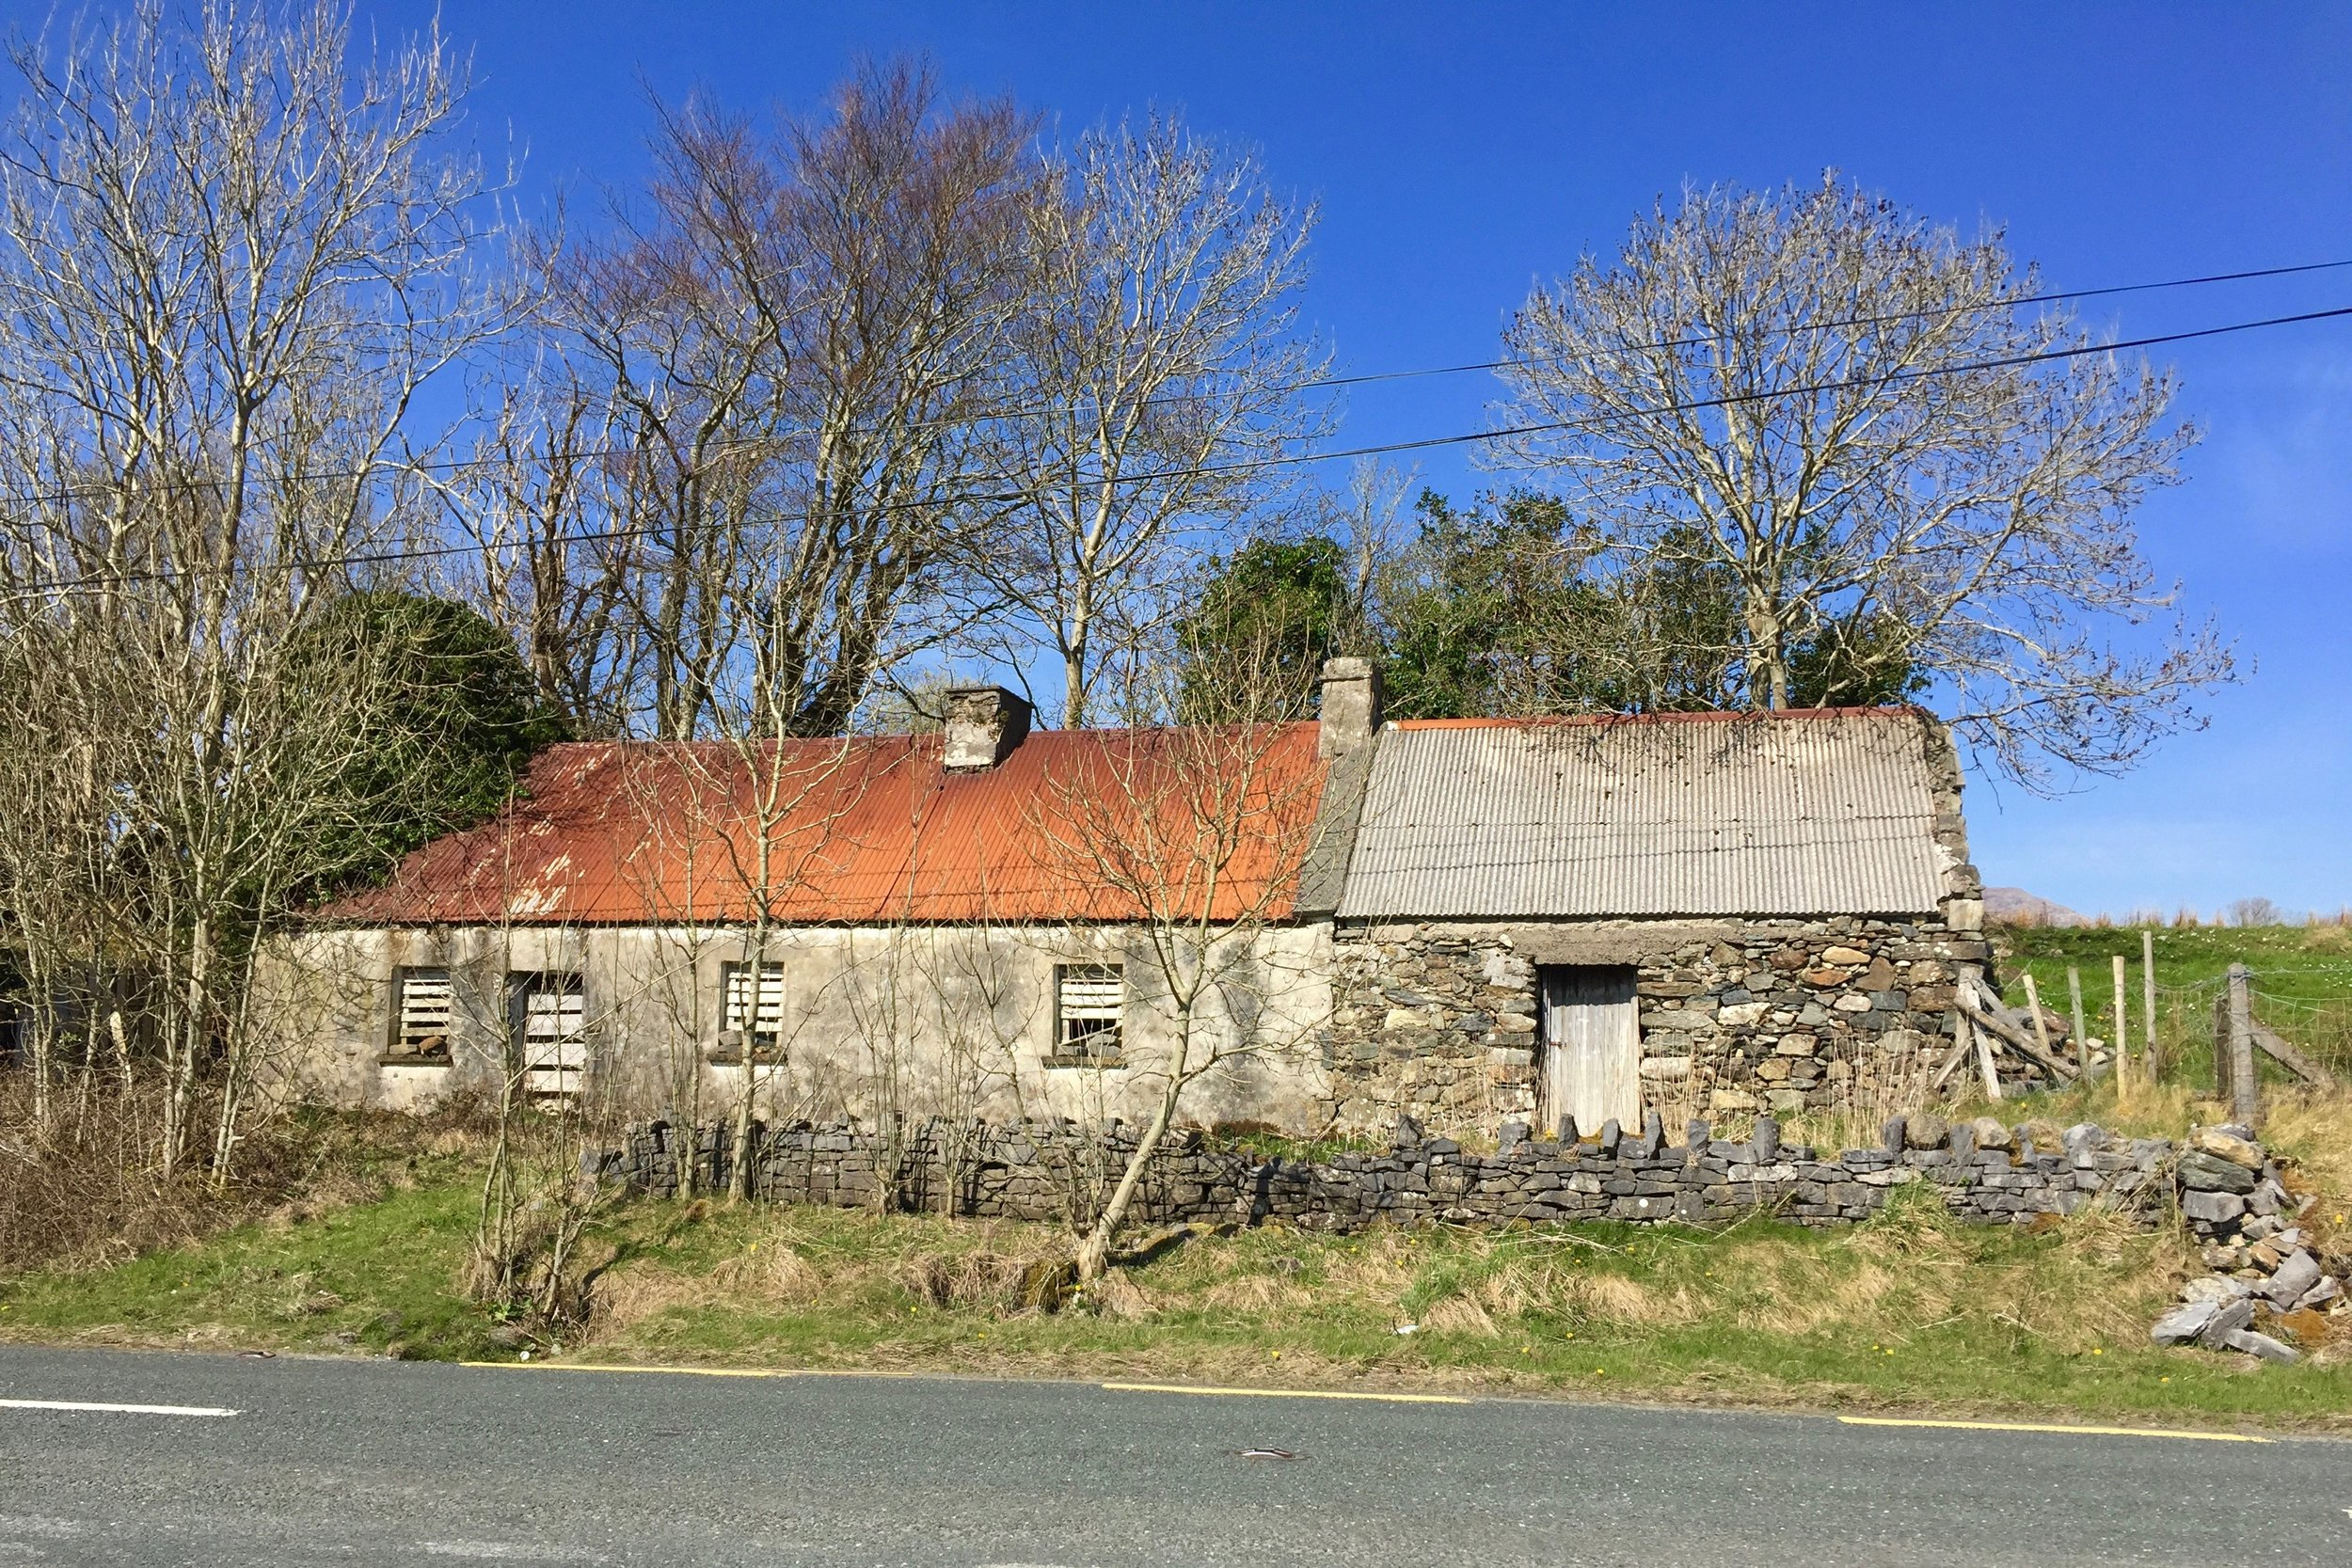 The road to Clifden is covered with rolling farmland and quaint stone cottages like this one.